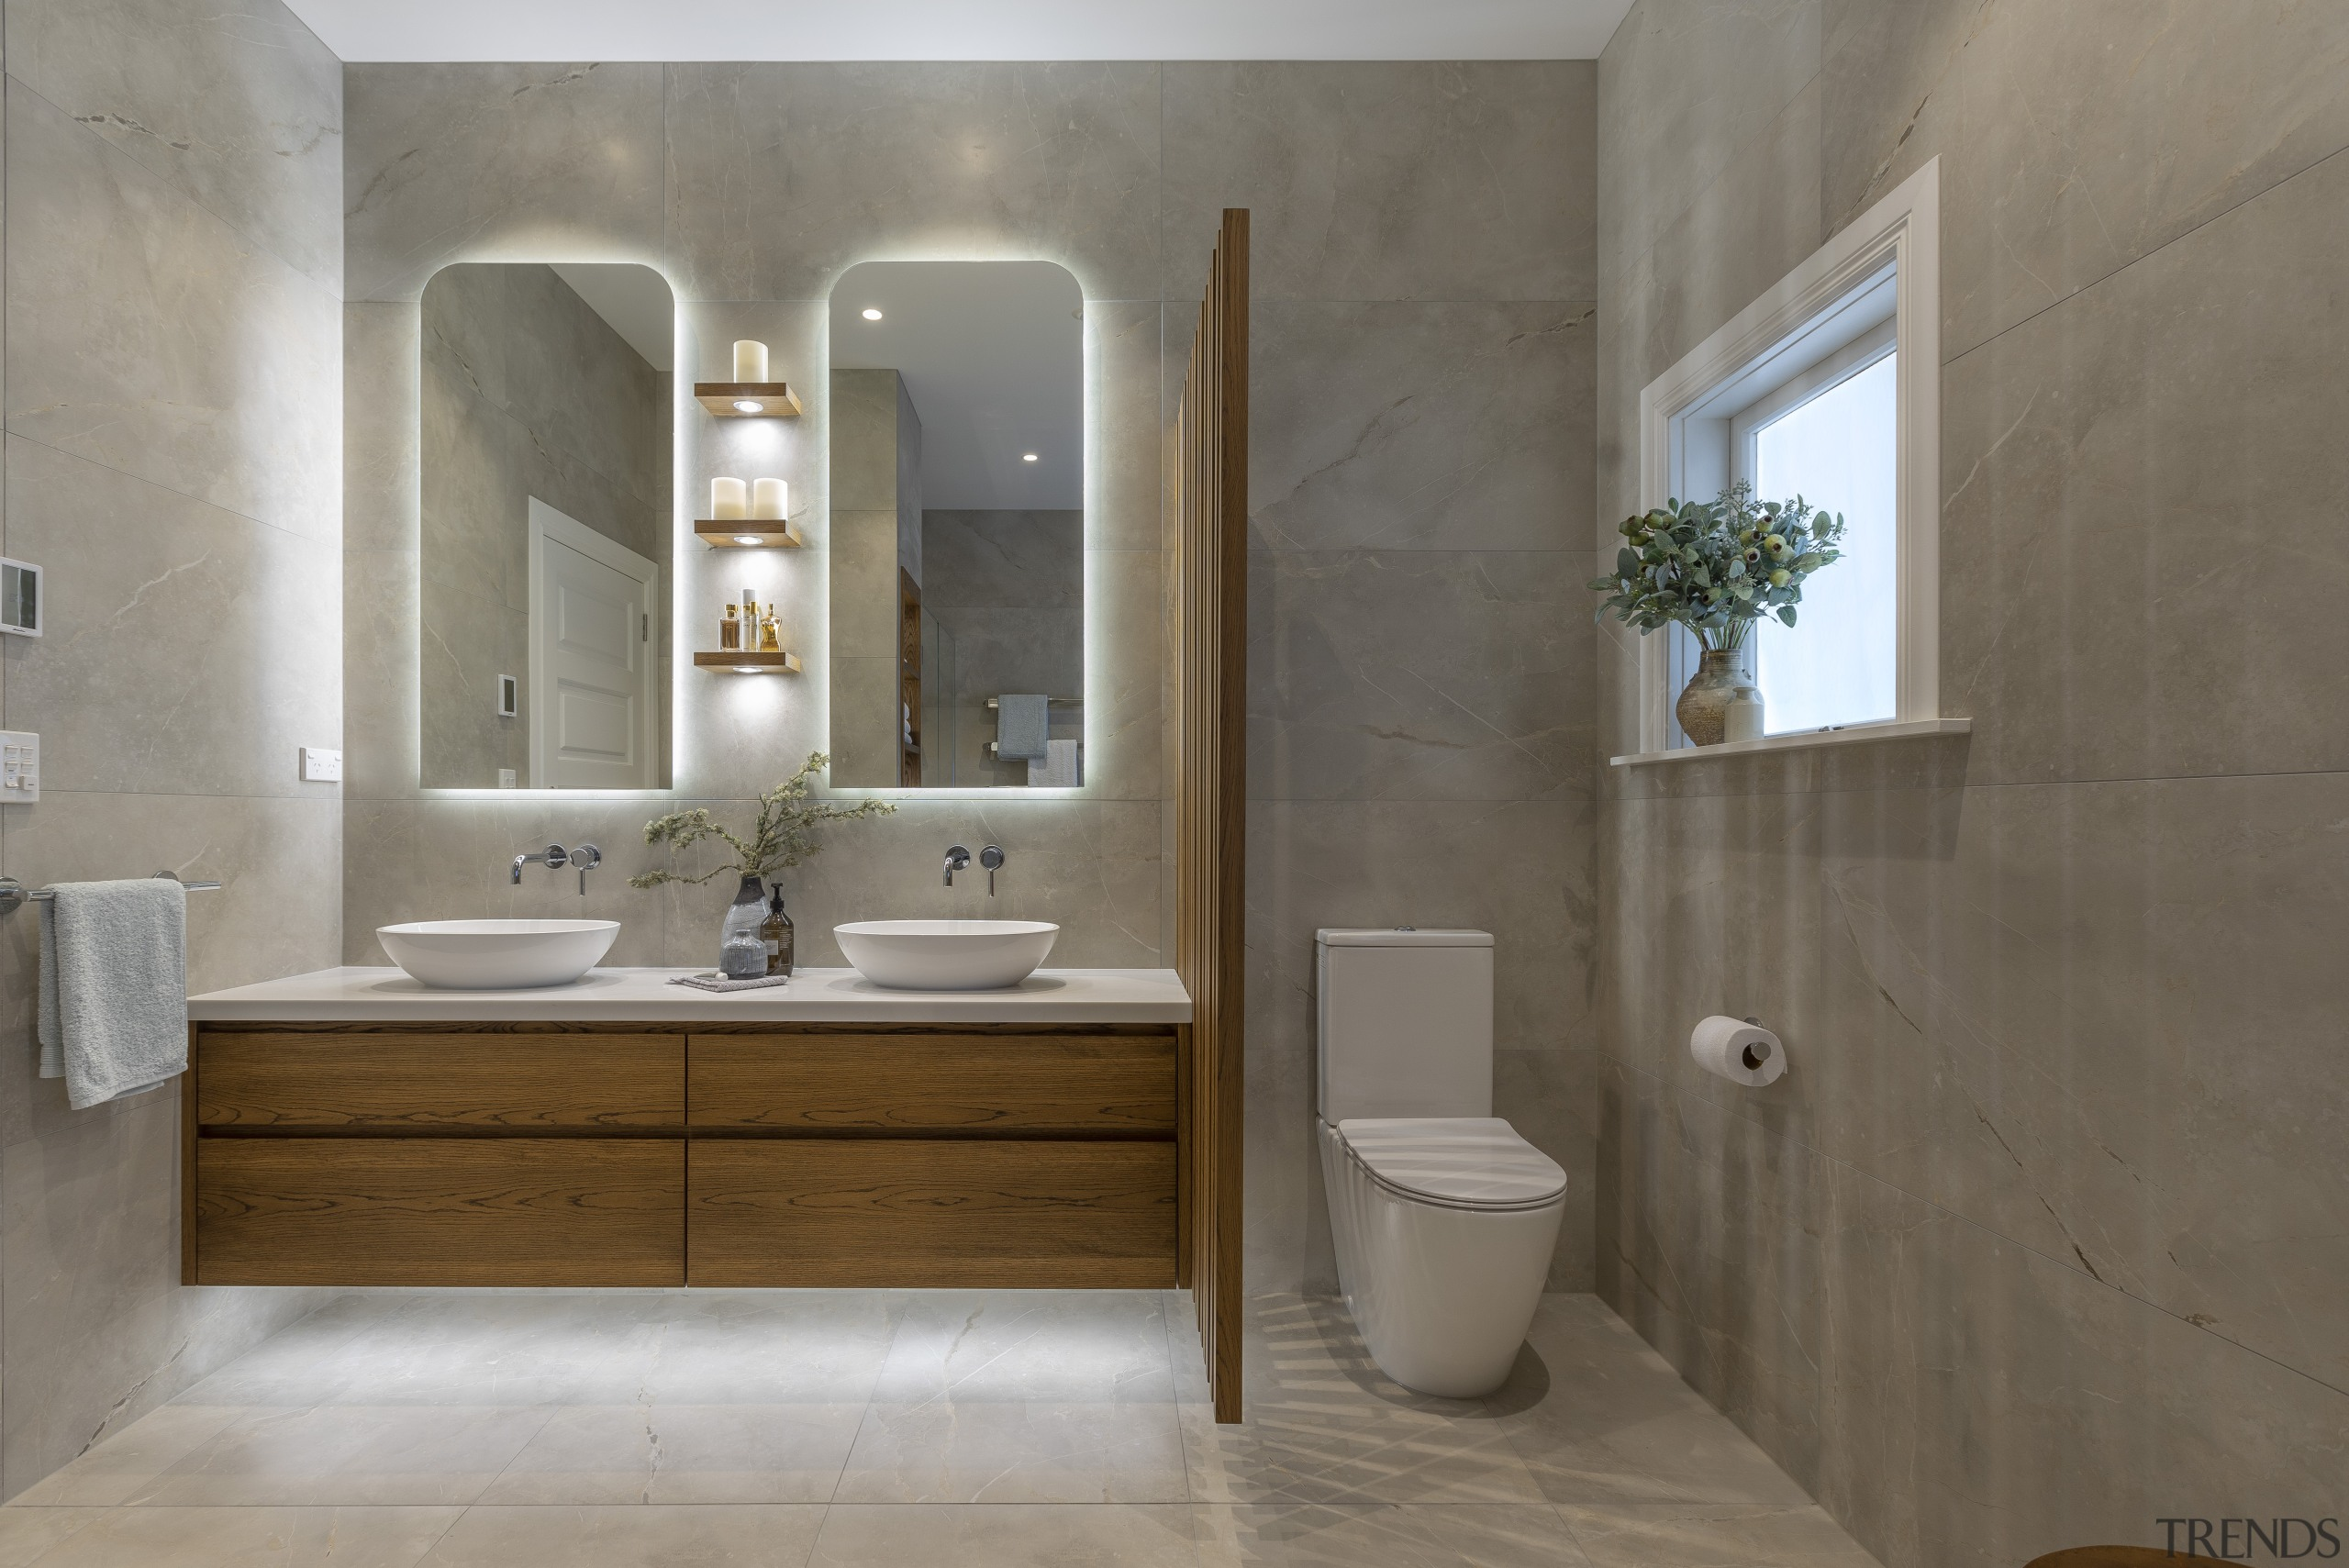 The wall cabinets and cantilevered vanity are both architecture, bathroom, bathroom accessory, bathroom cabinet, building, ceramic, floor, flooring, furniture, interior design, material property, plumbing fixture, property, room, sink, tap, tile, toilet, wall, gray